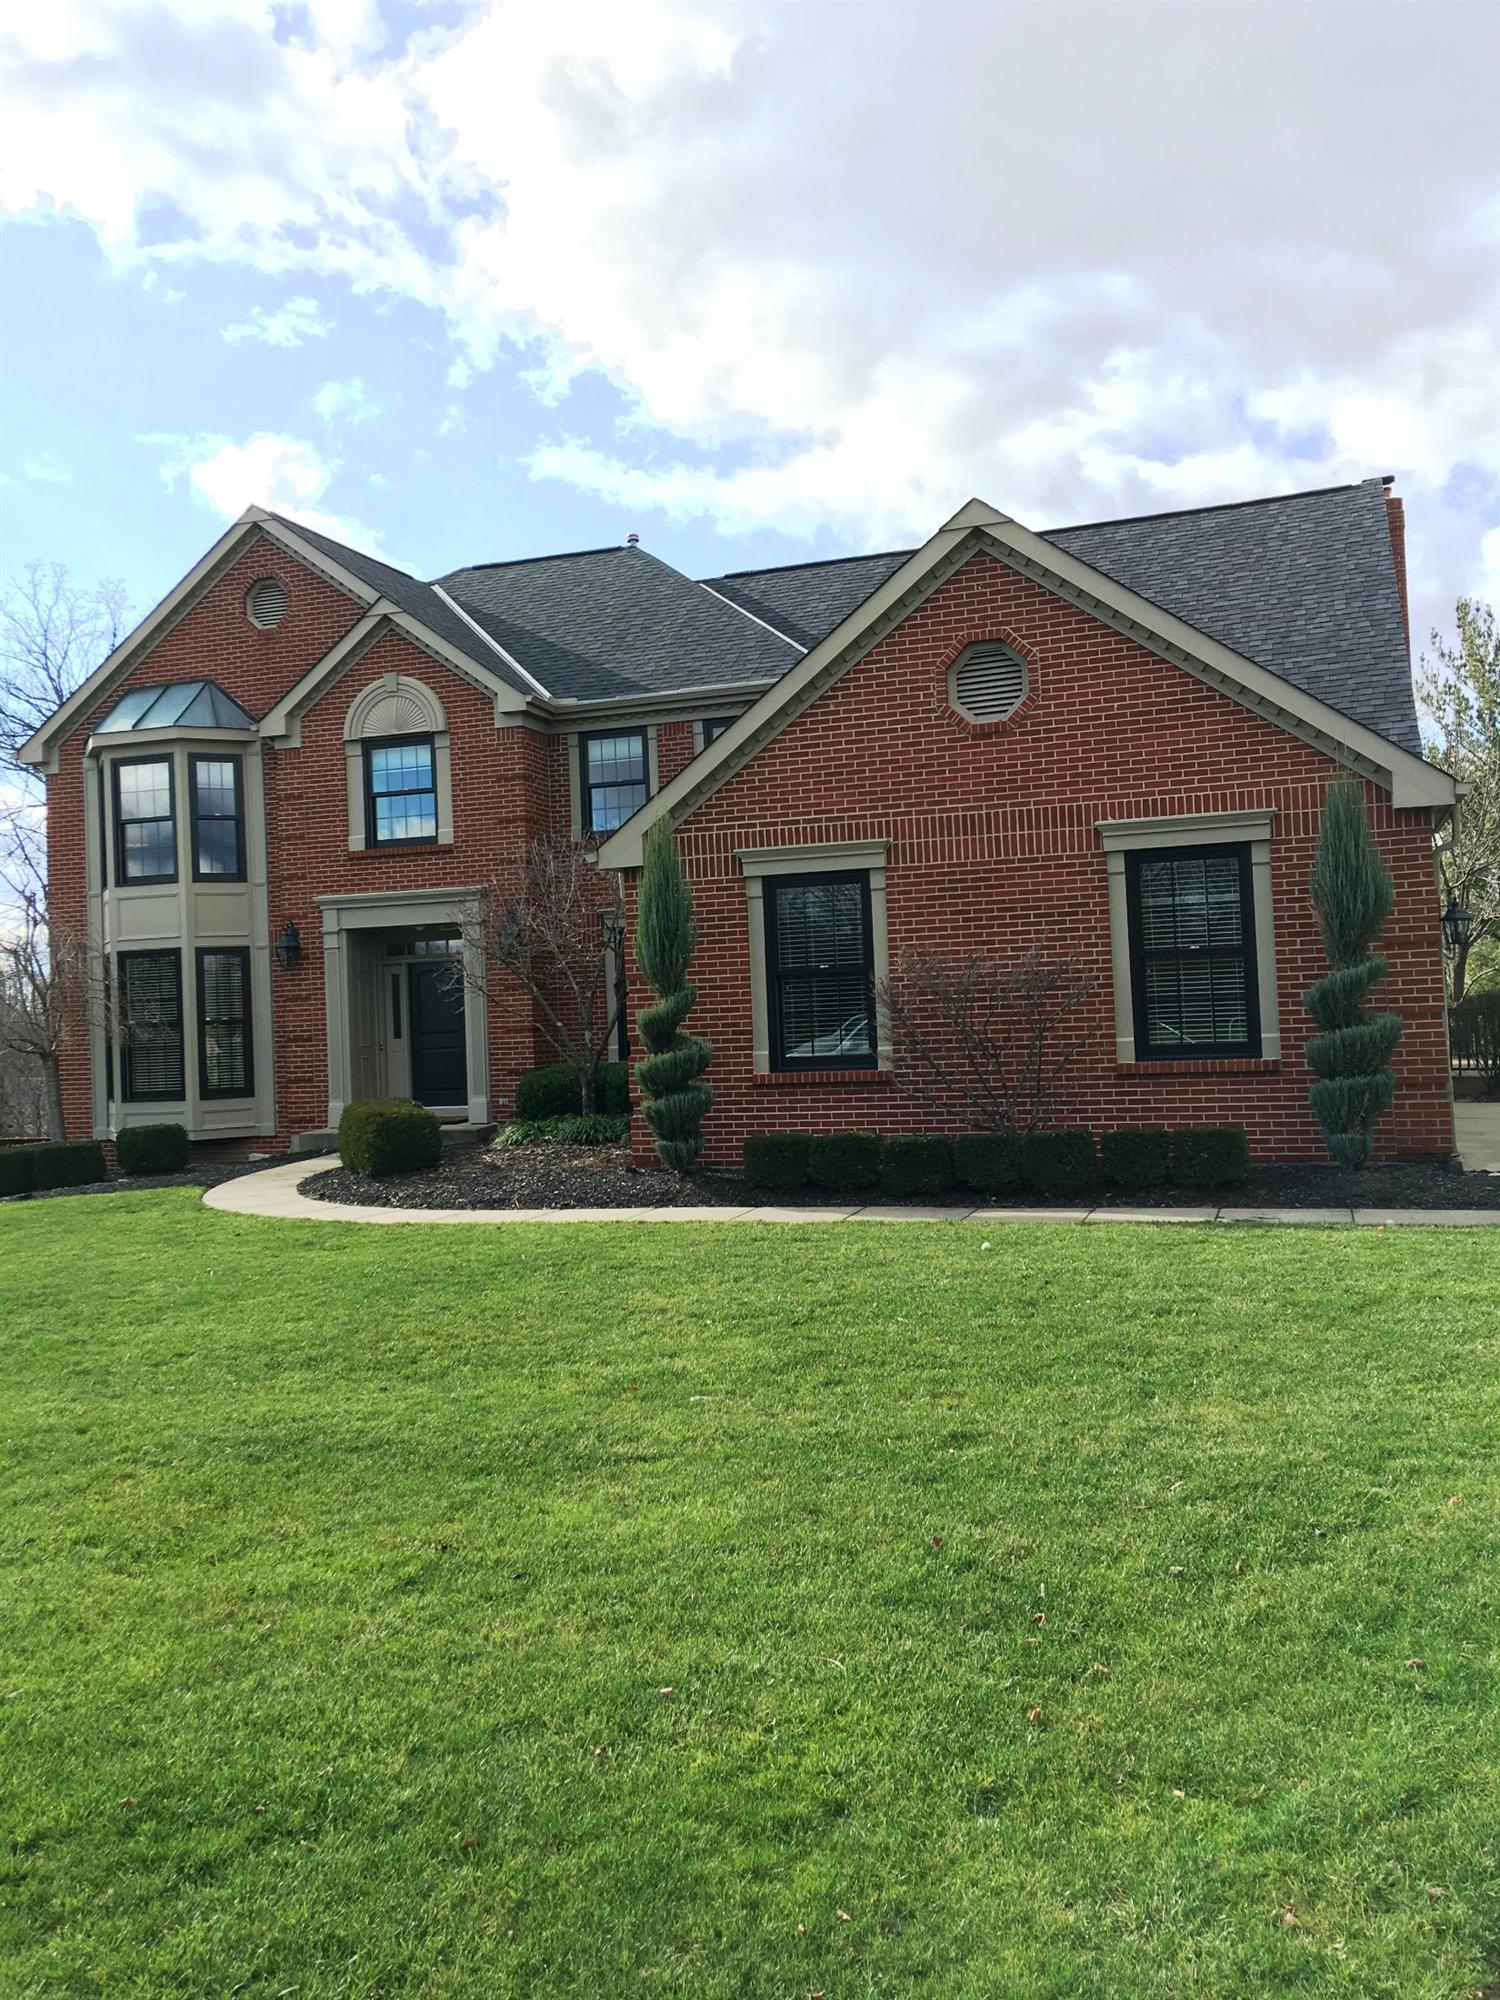 Photo 1 for 3072 Prestwicke Dr Edgewood, KY 41017